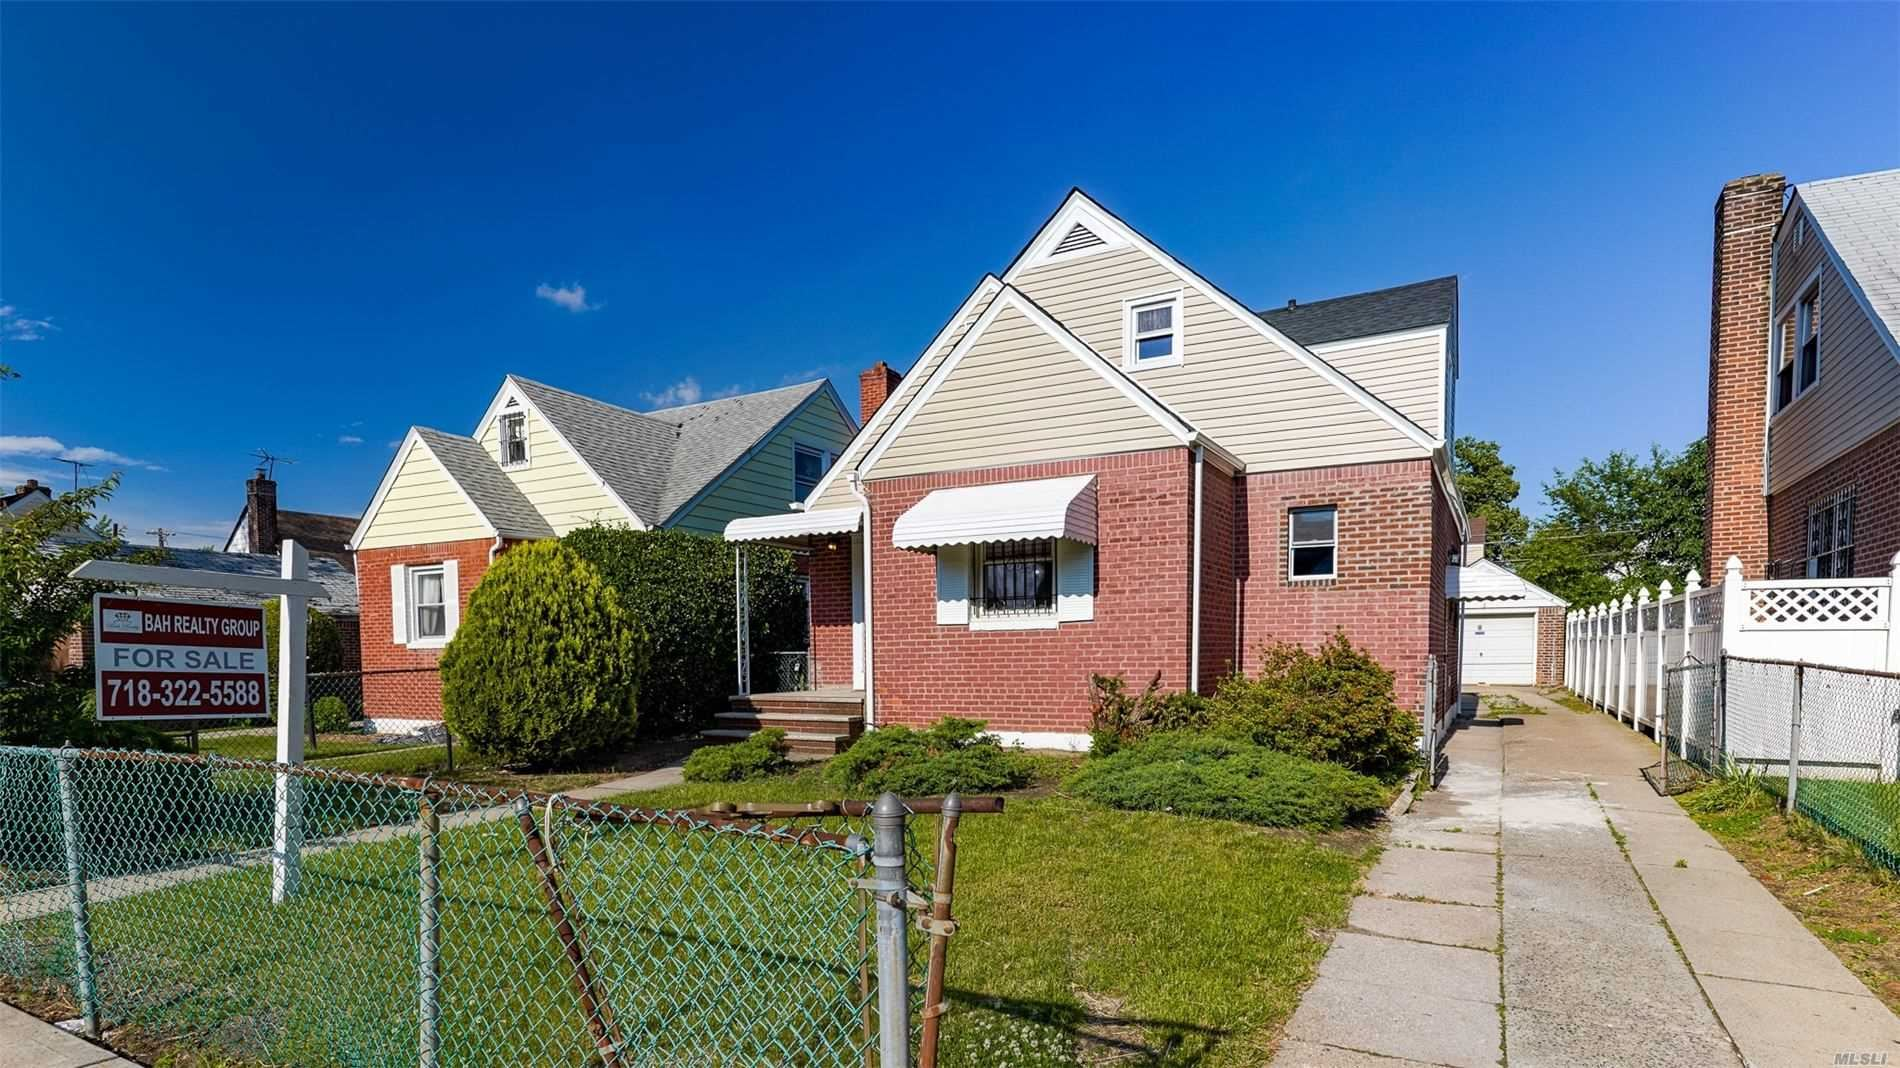 114-35 225th St, Cambria Heights, NY 11411 - MLS#: 3213357